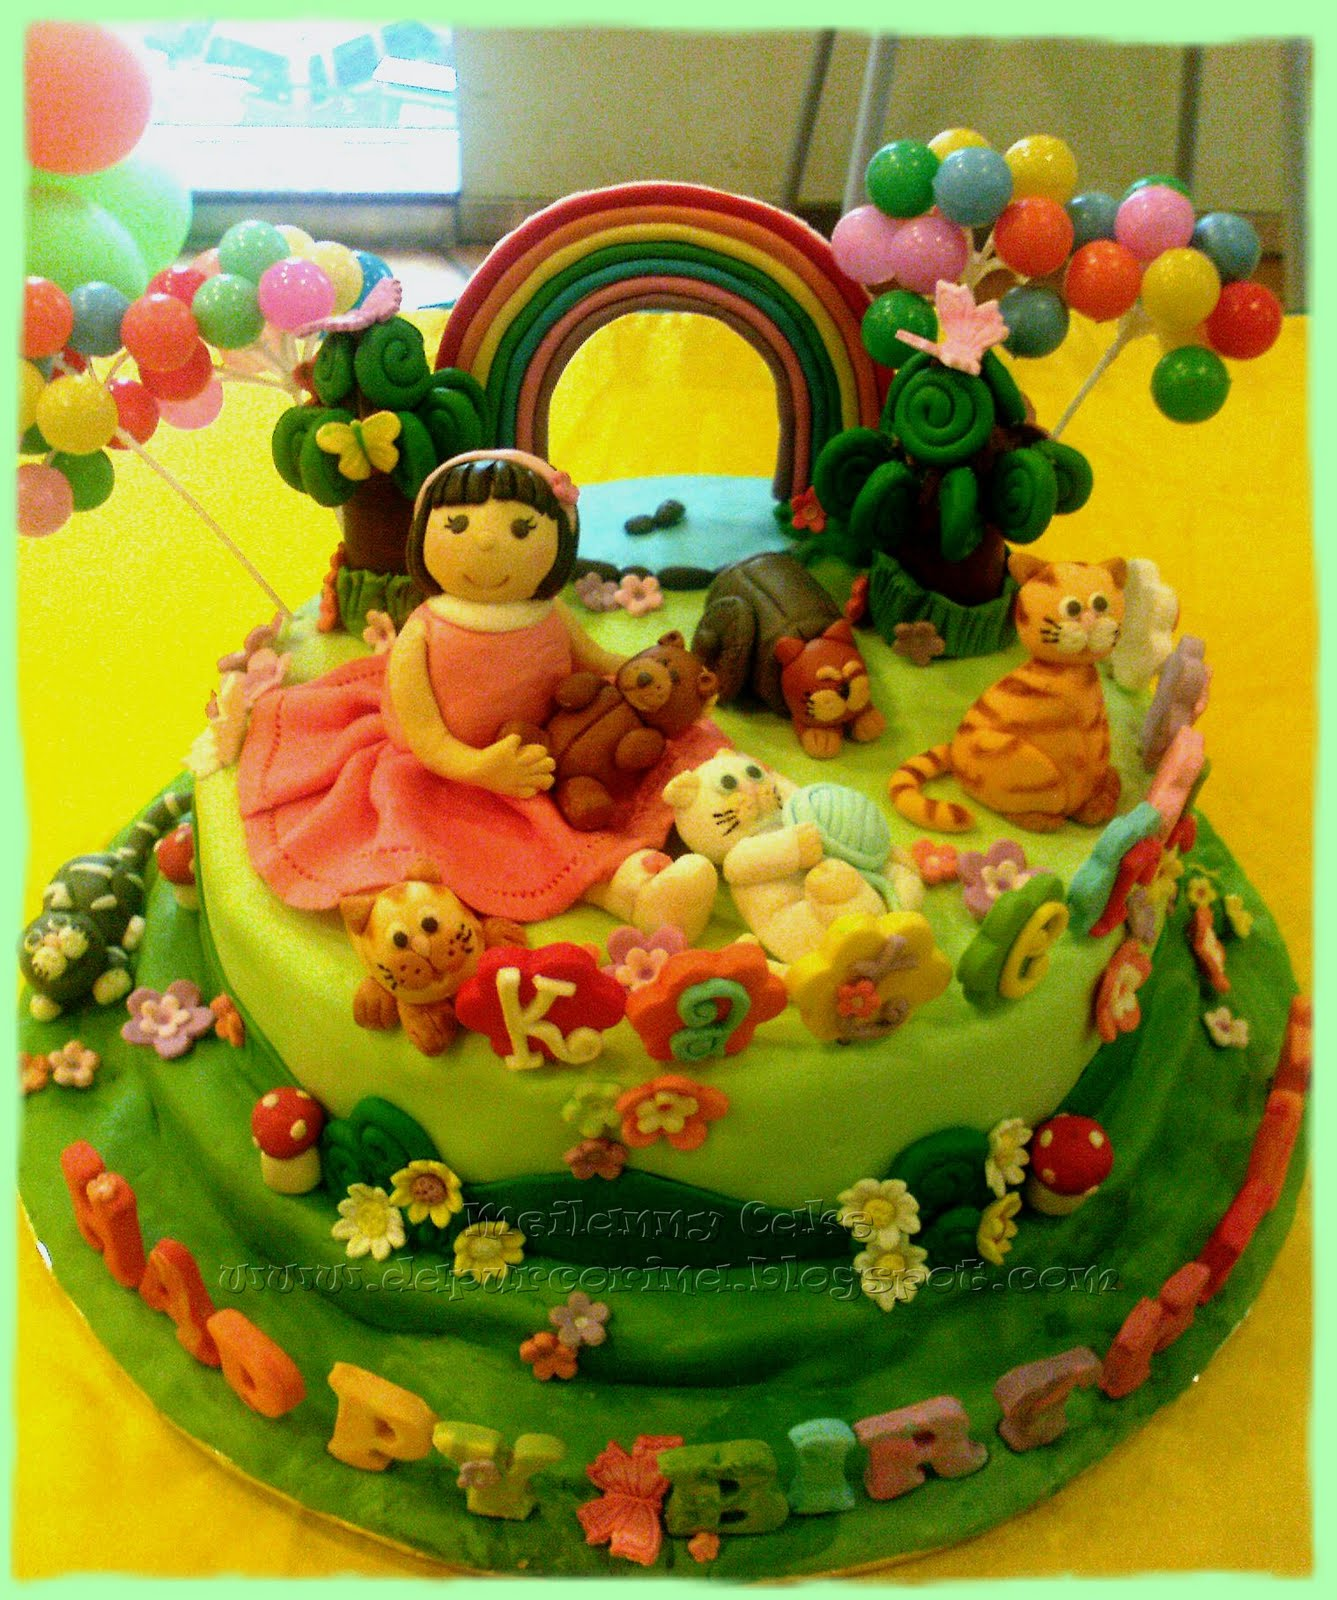 Kue Ulang Tahun Anak : Kate & The Cat in the Garden